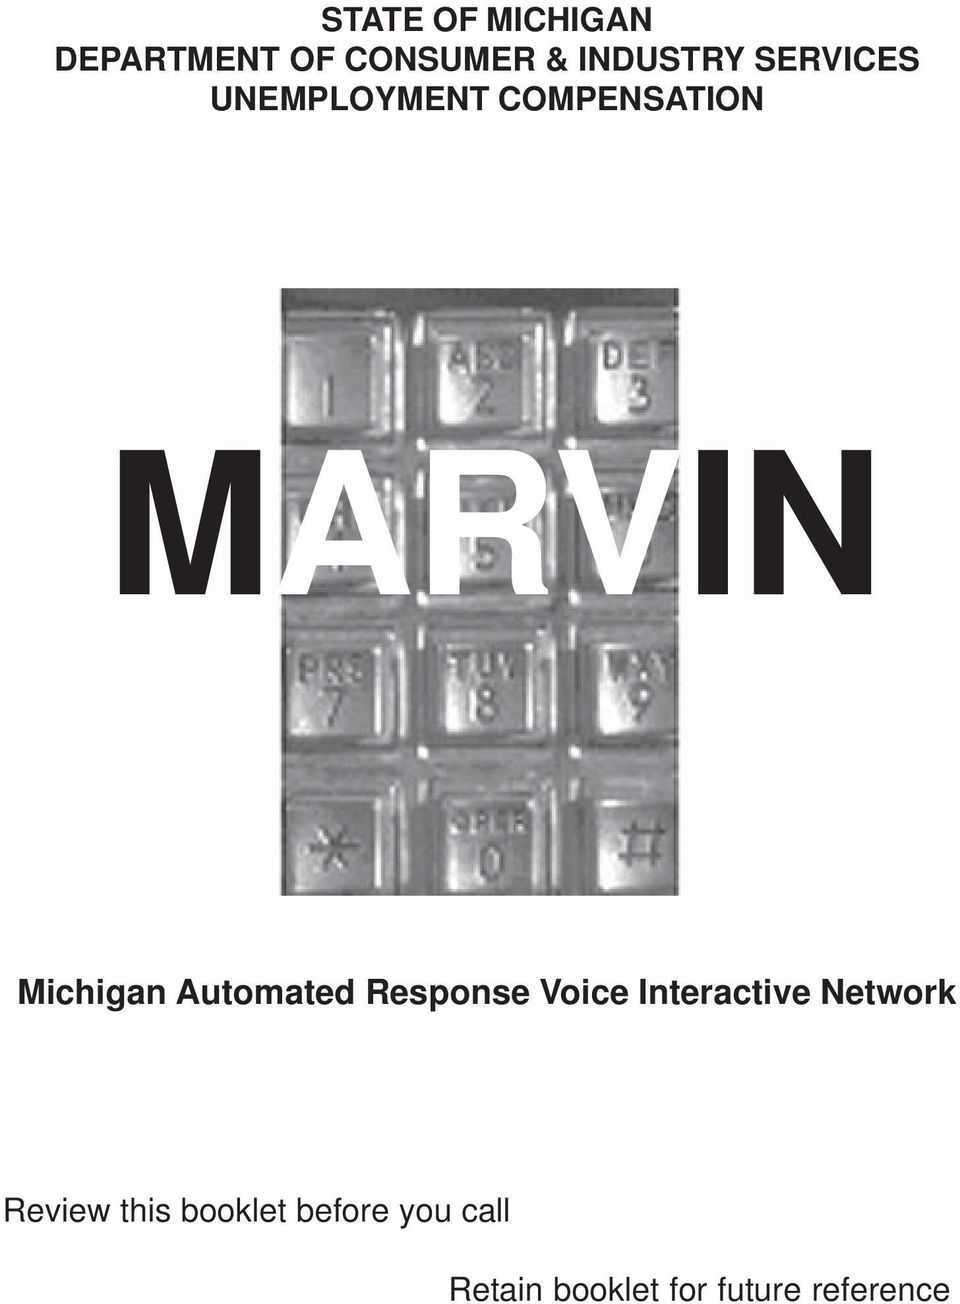 State Of Michigan Department Of Consumer Industry Services Unemployment Compensation Marvin Pdf Free Download